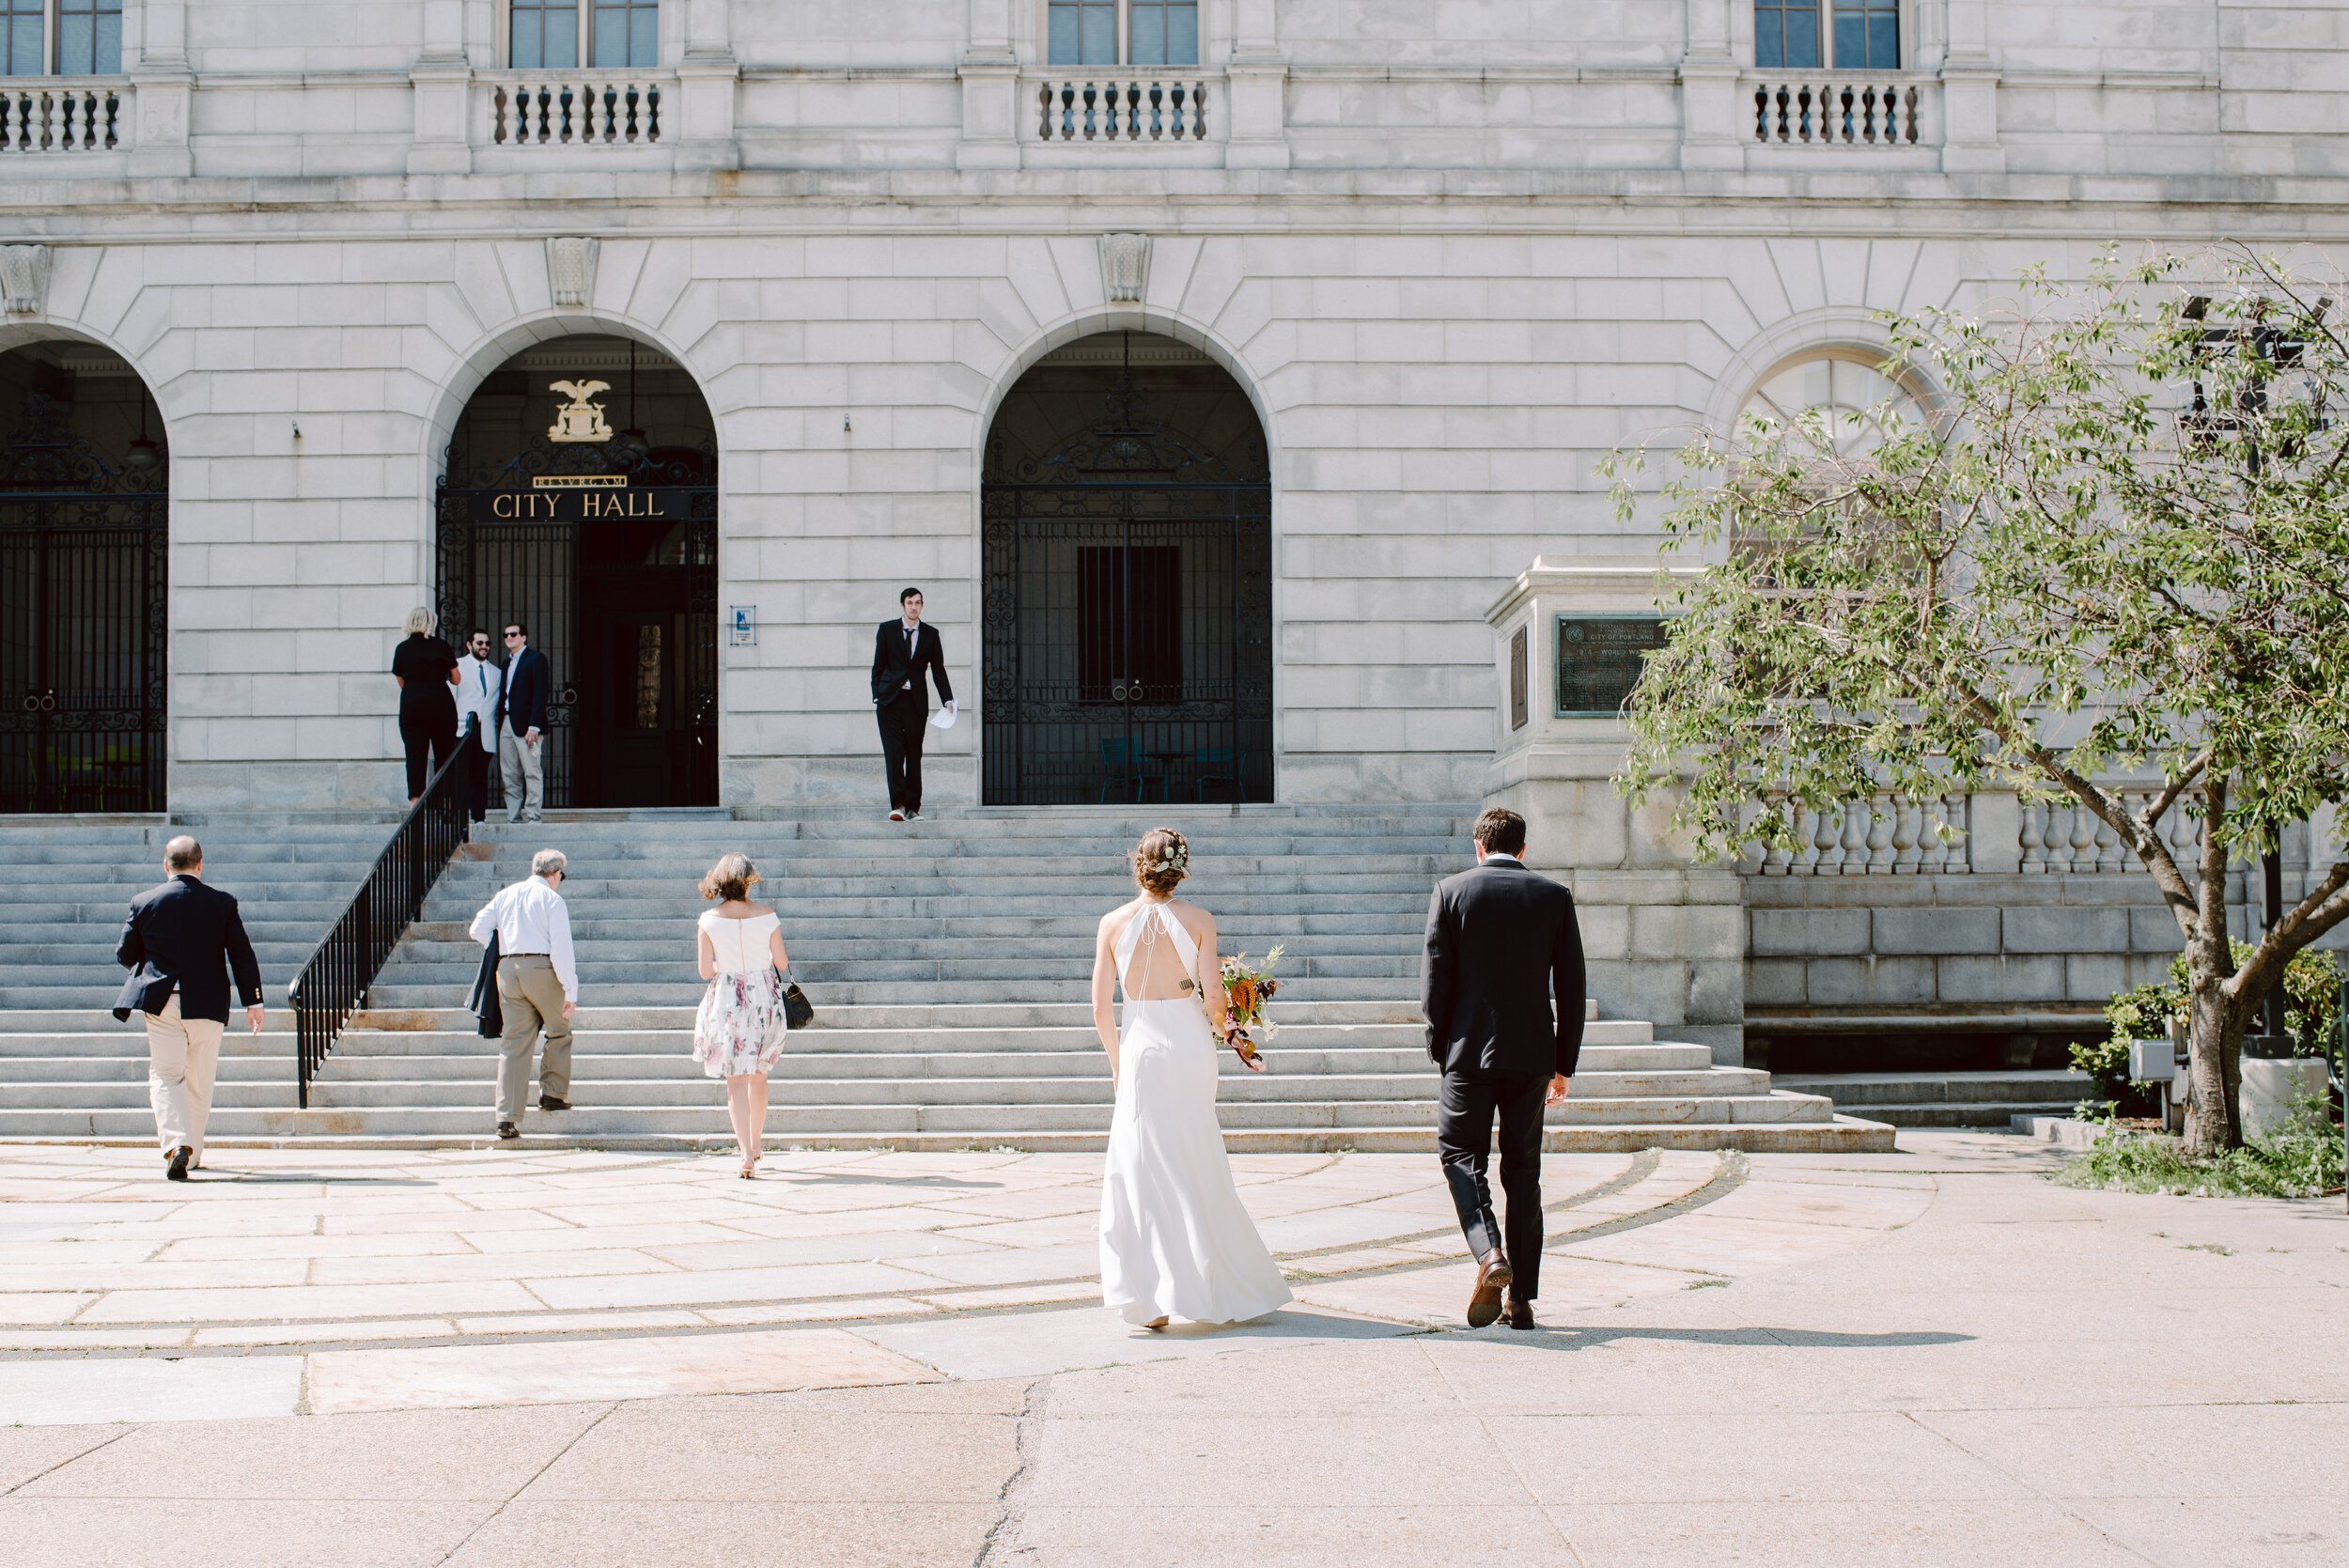 getting married at portland city hall evreything you need to know